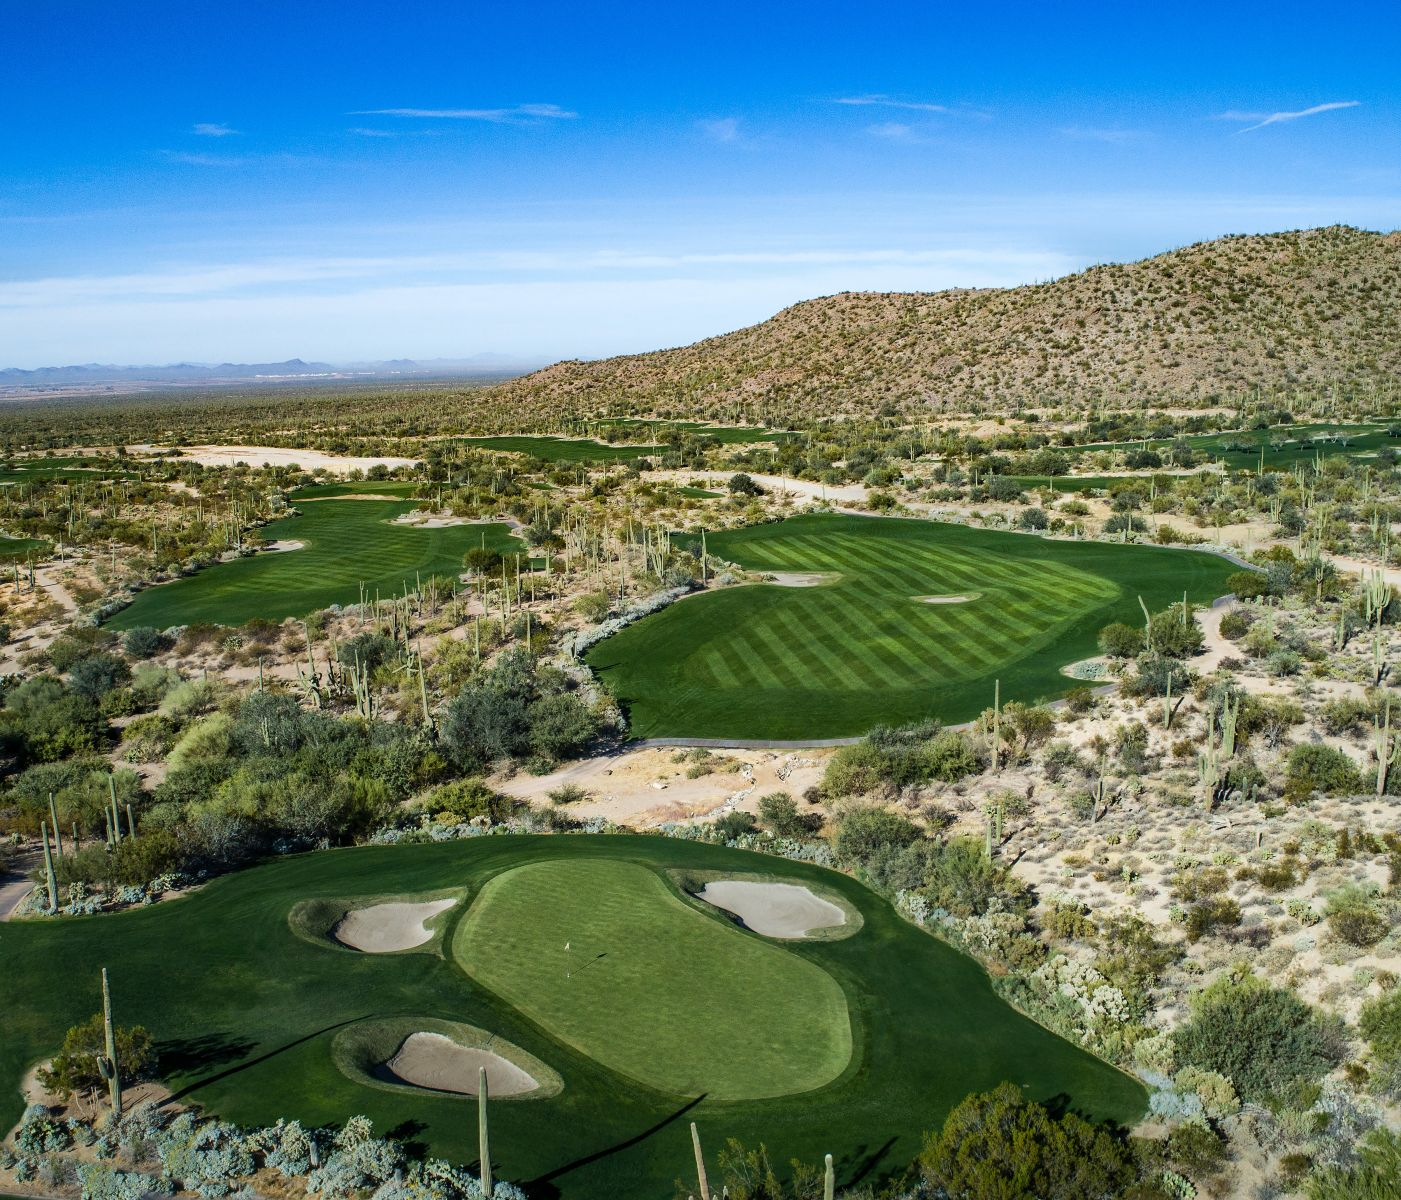 Aerial view of hole 9 on the Tortolita course